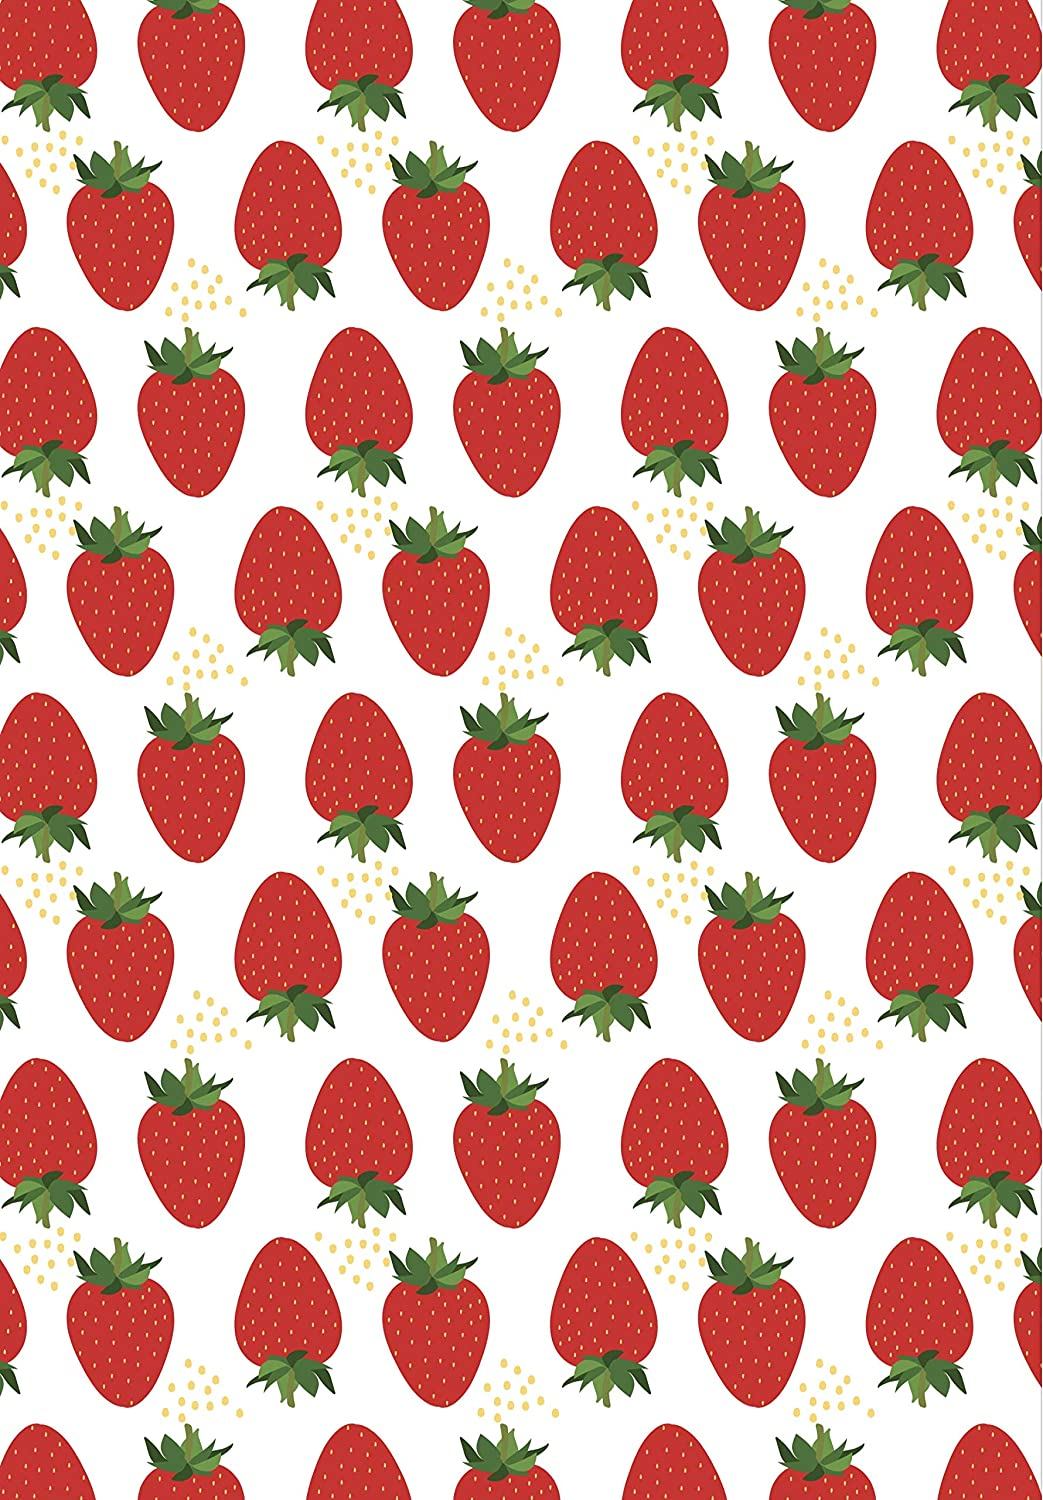 Anniversary Birthday Strawberry Gift Wrapping Paper Roll Wedding Christmas